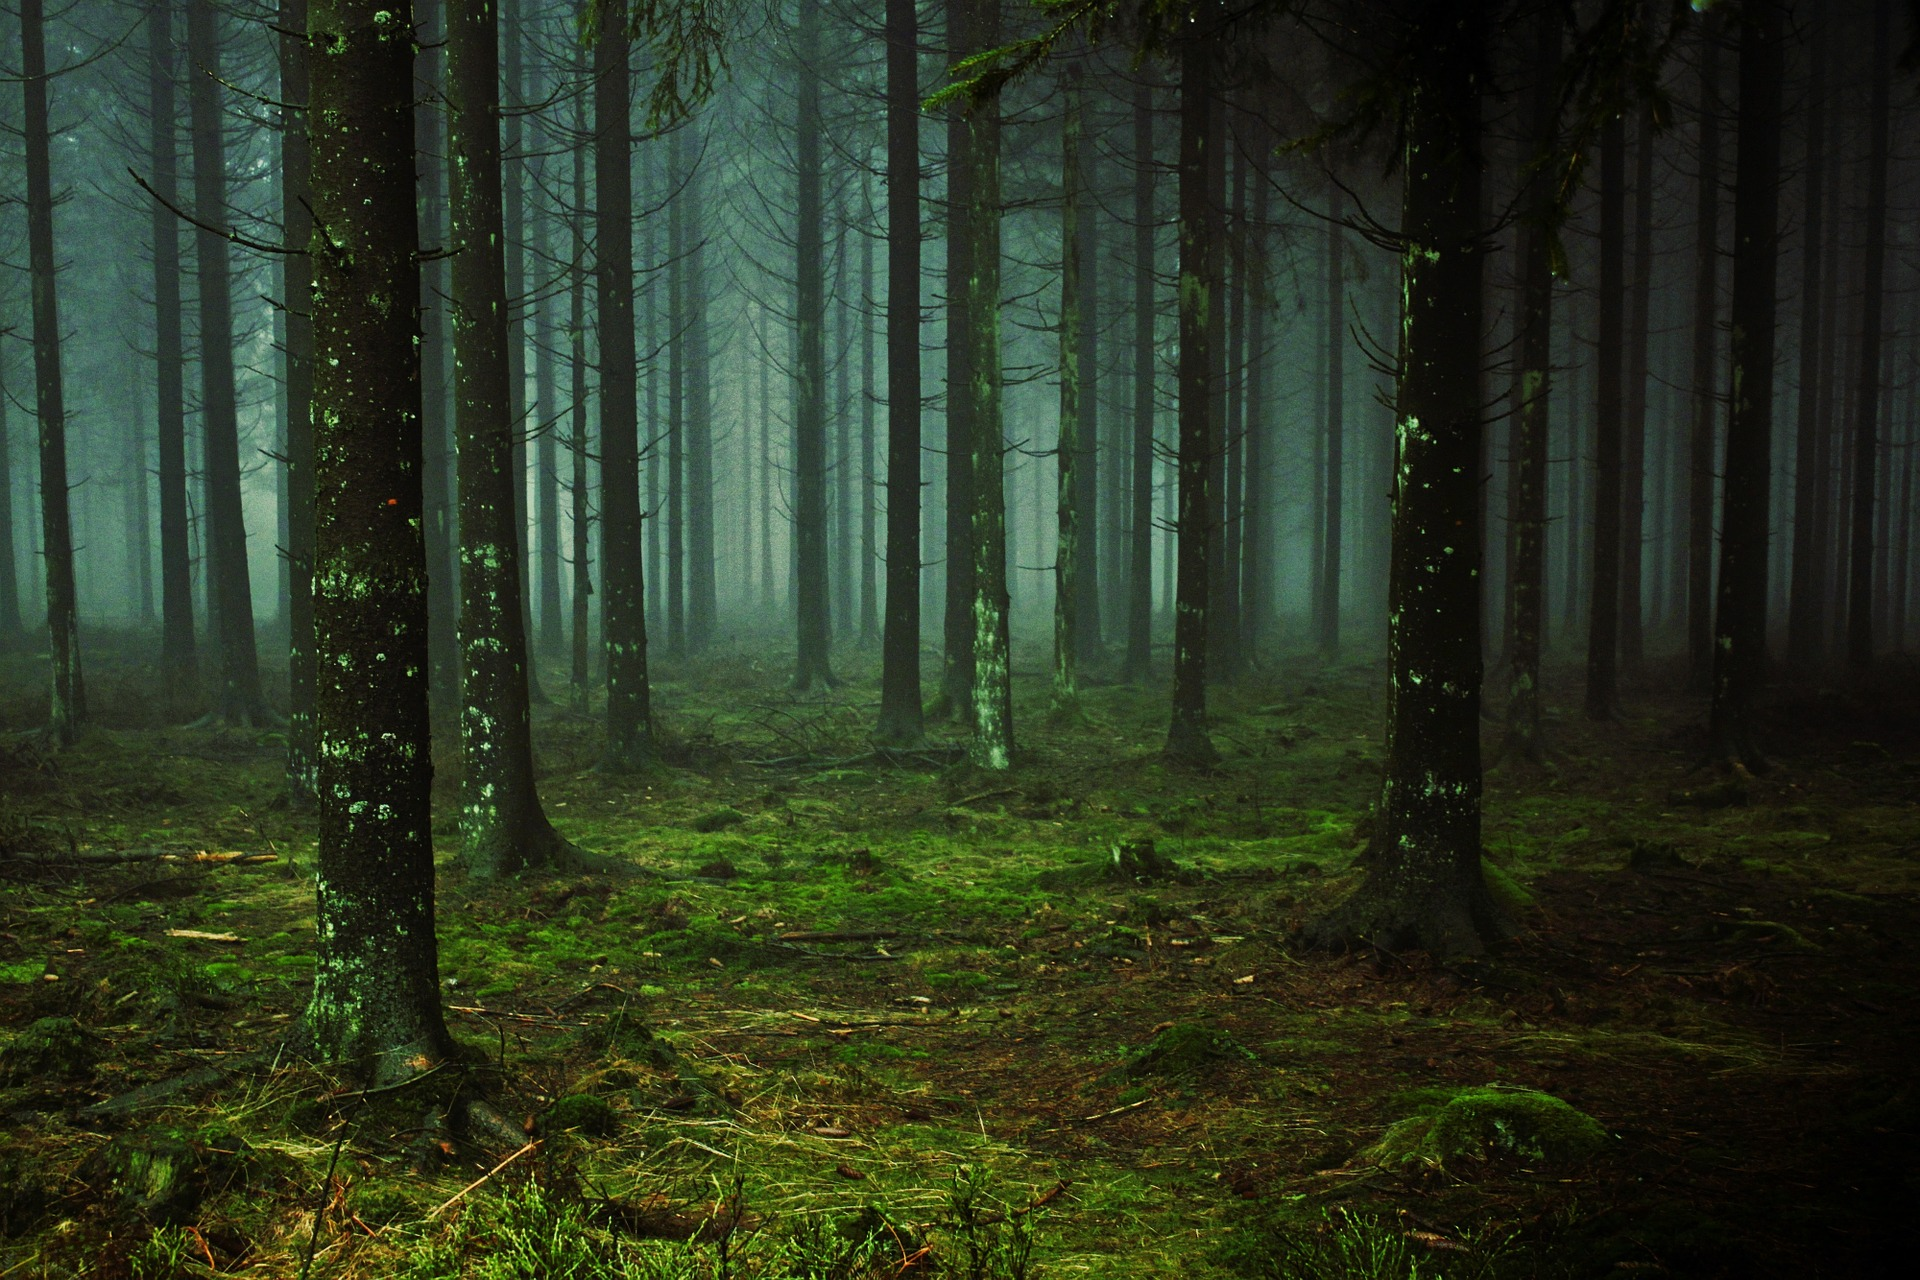 """ Forest, fog, tree, trunks "" by  Anja Osenberg  is  Public Domain ."